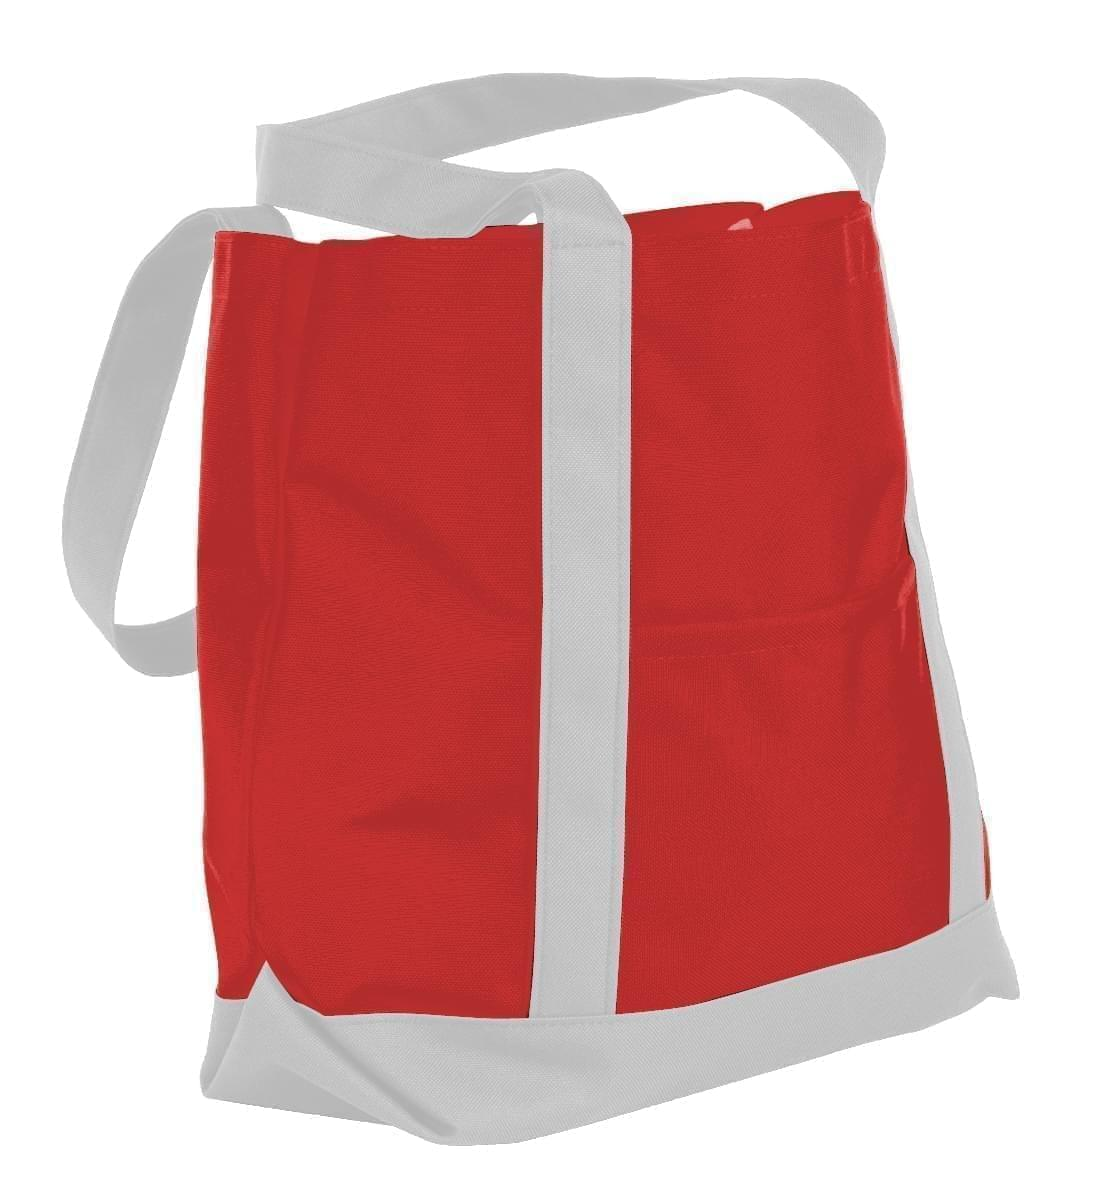 USA Made Nylon Poly Boat Tote Bags, Red-White, XAACL1UAZP